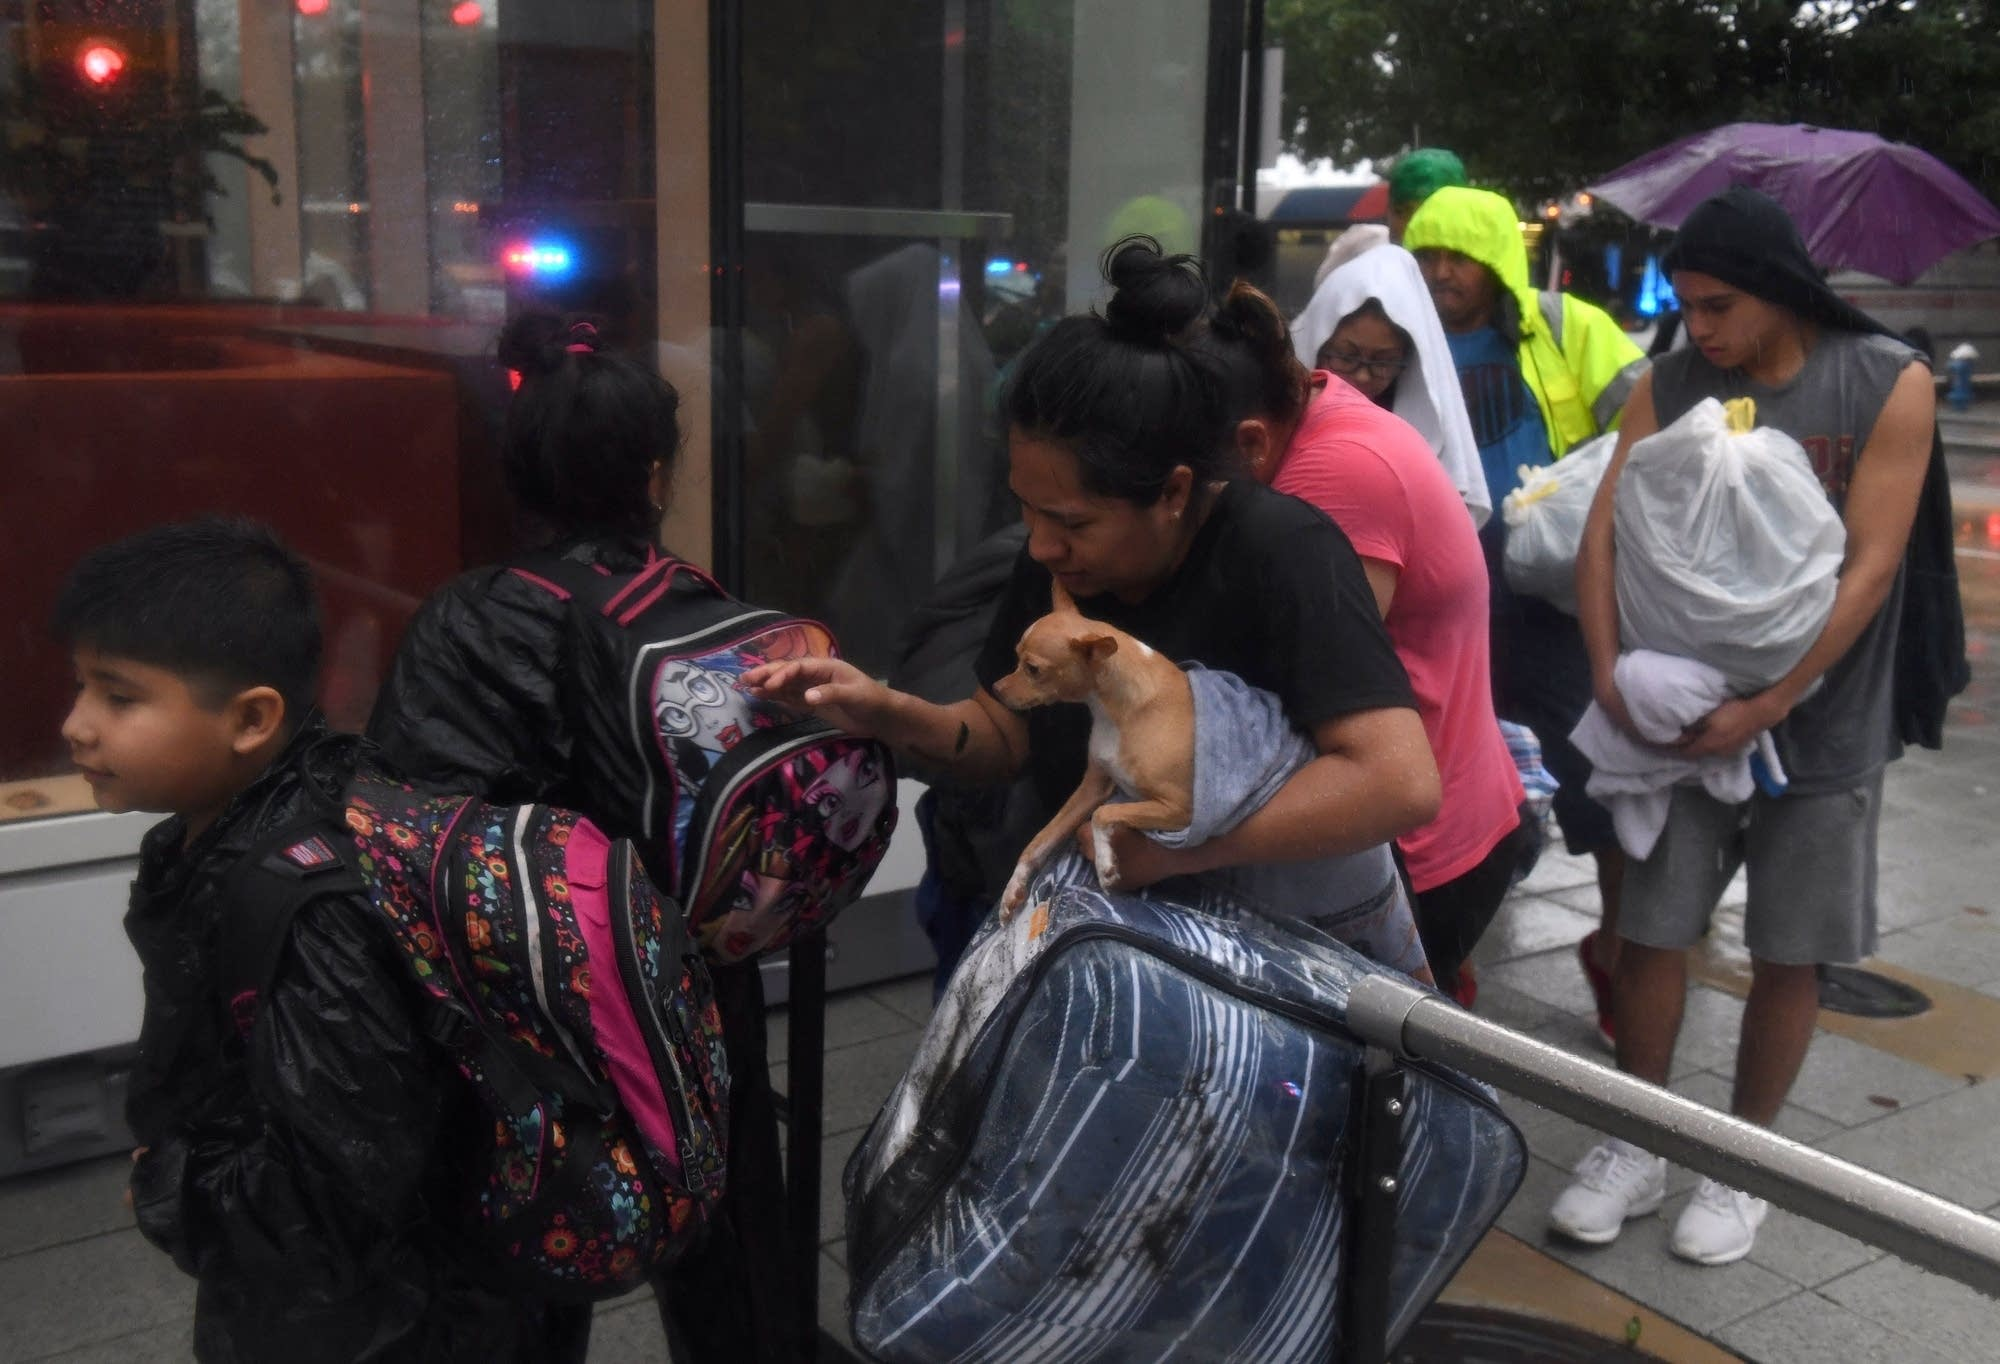 Evacuees arrive at the Convention Center shelter after evacuating.